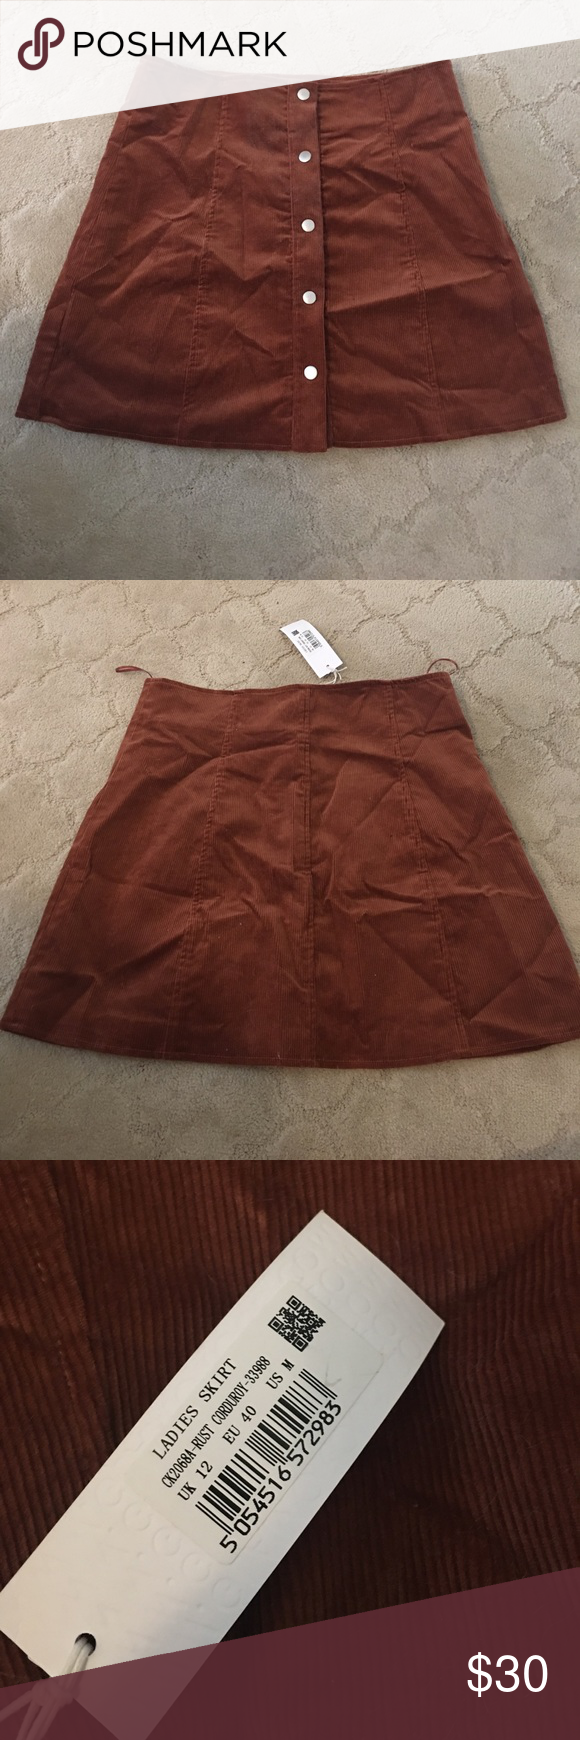 Corduroy Button-up Skirt Rust colored corduroy skirt with silver buttons. New with tags Skirts Mini